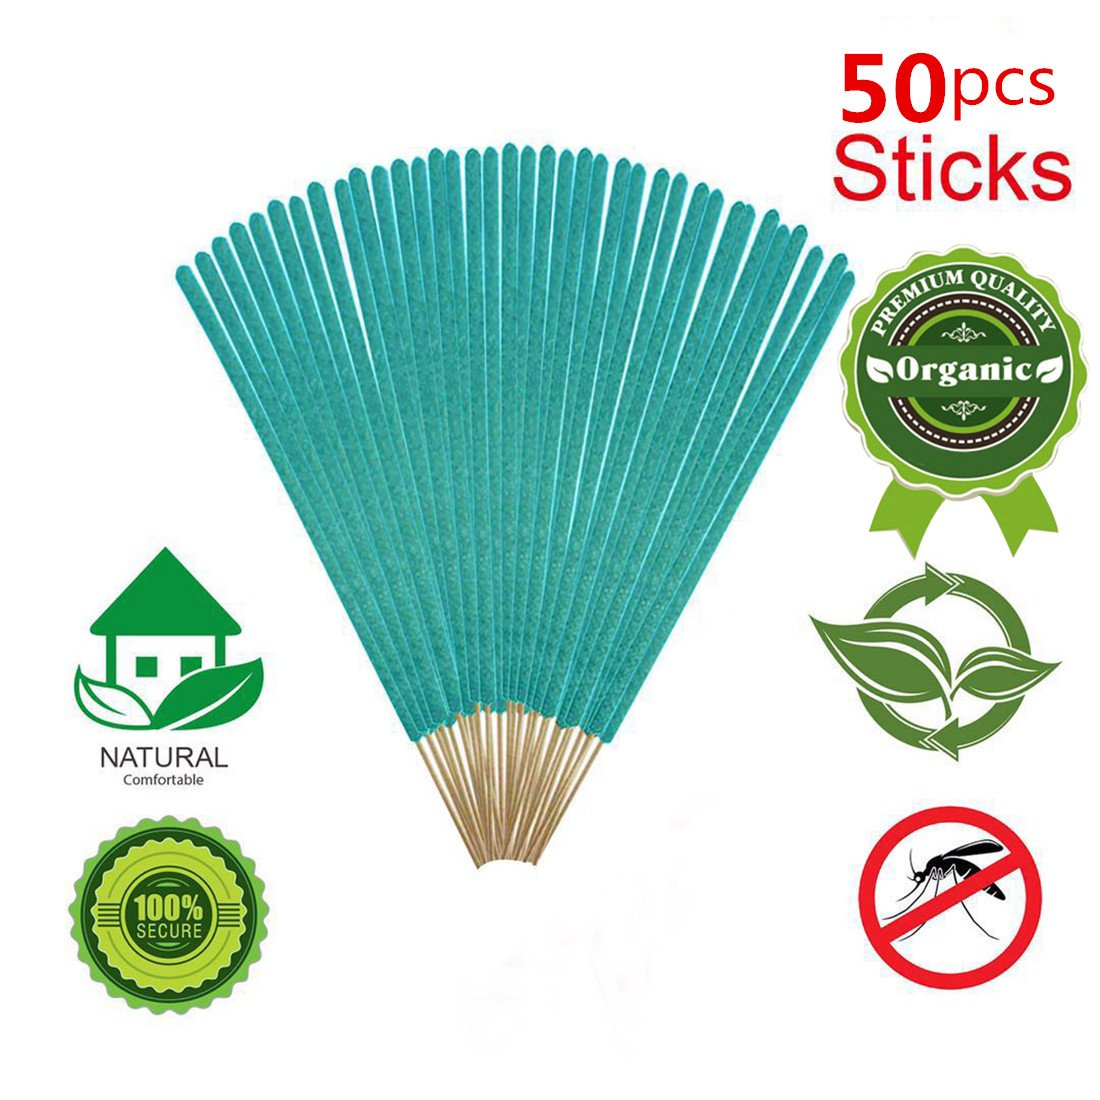 50PCS All-Natural Plant-Based Mosquito Sticks Premium Repellent Outdoor Garden Incense Sticks Long Lasting 40 minutes Time Rosemary Thyme 100% Natural Citronella with Lemongrass (Pack of 50pcs,Green) by Yoker